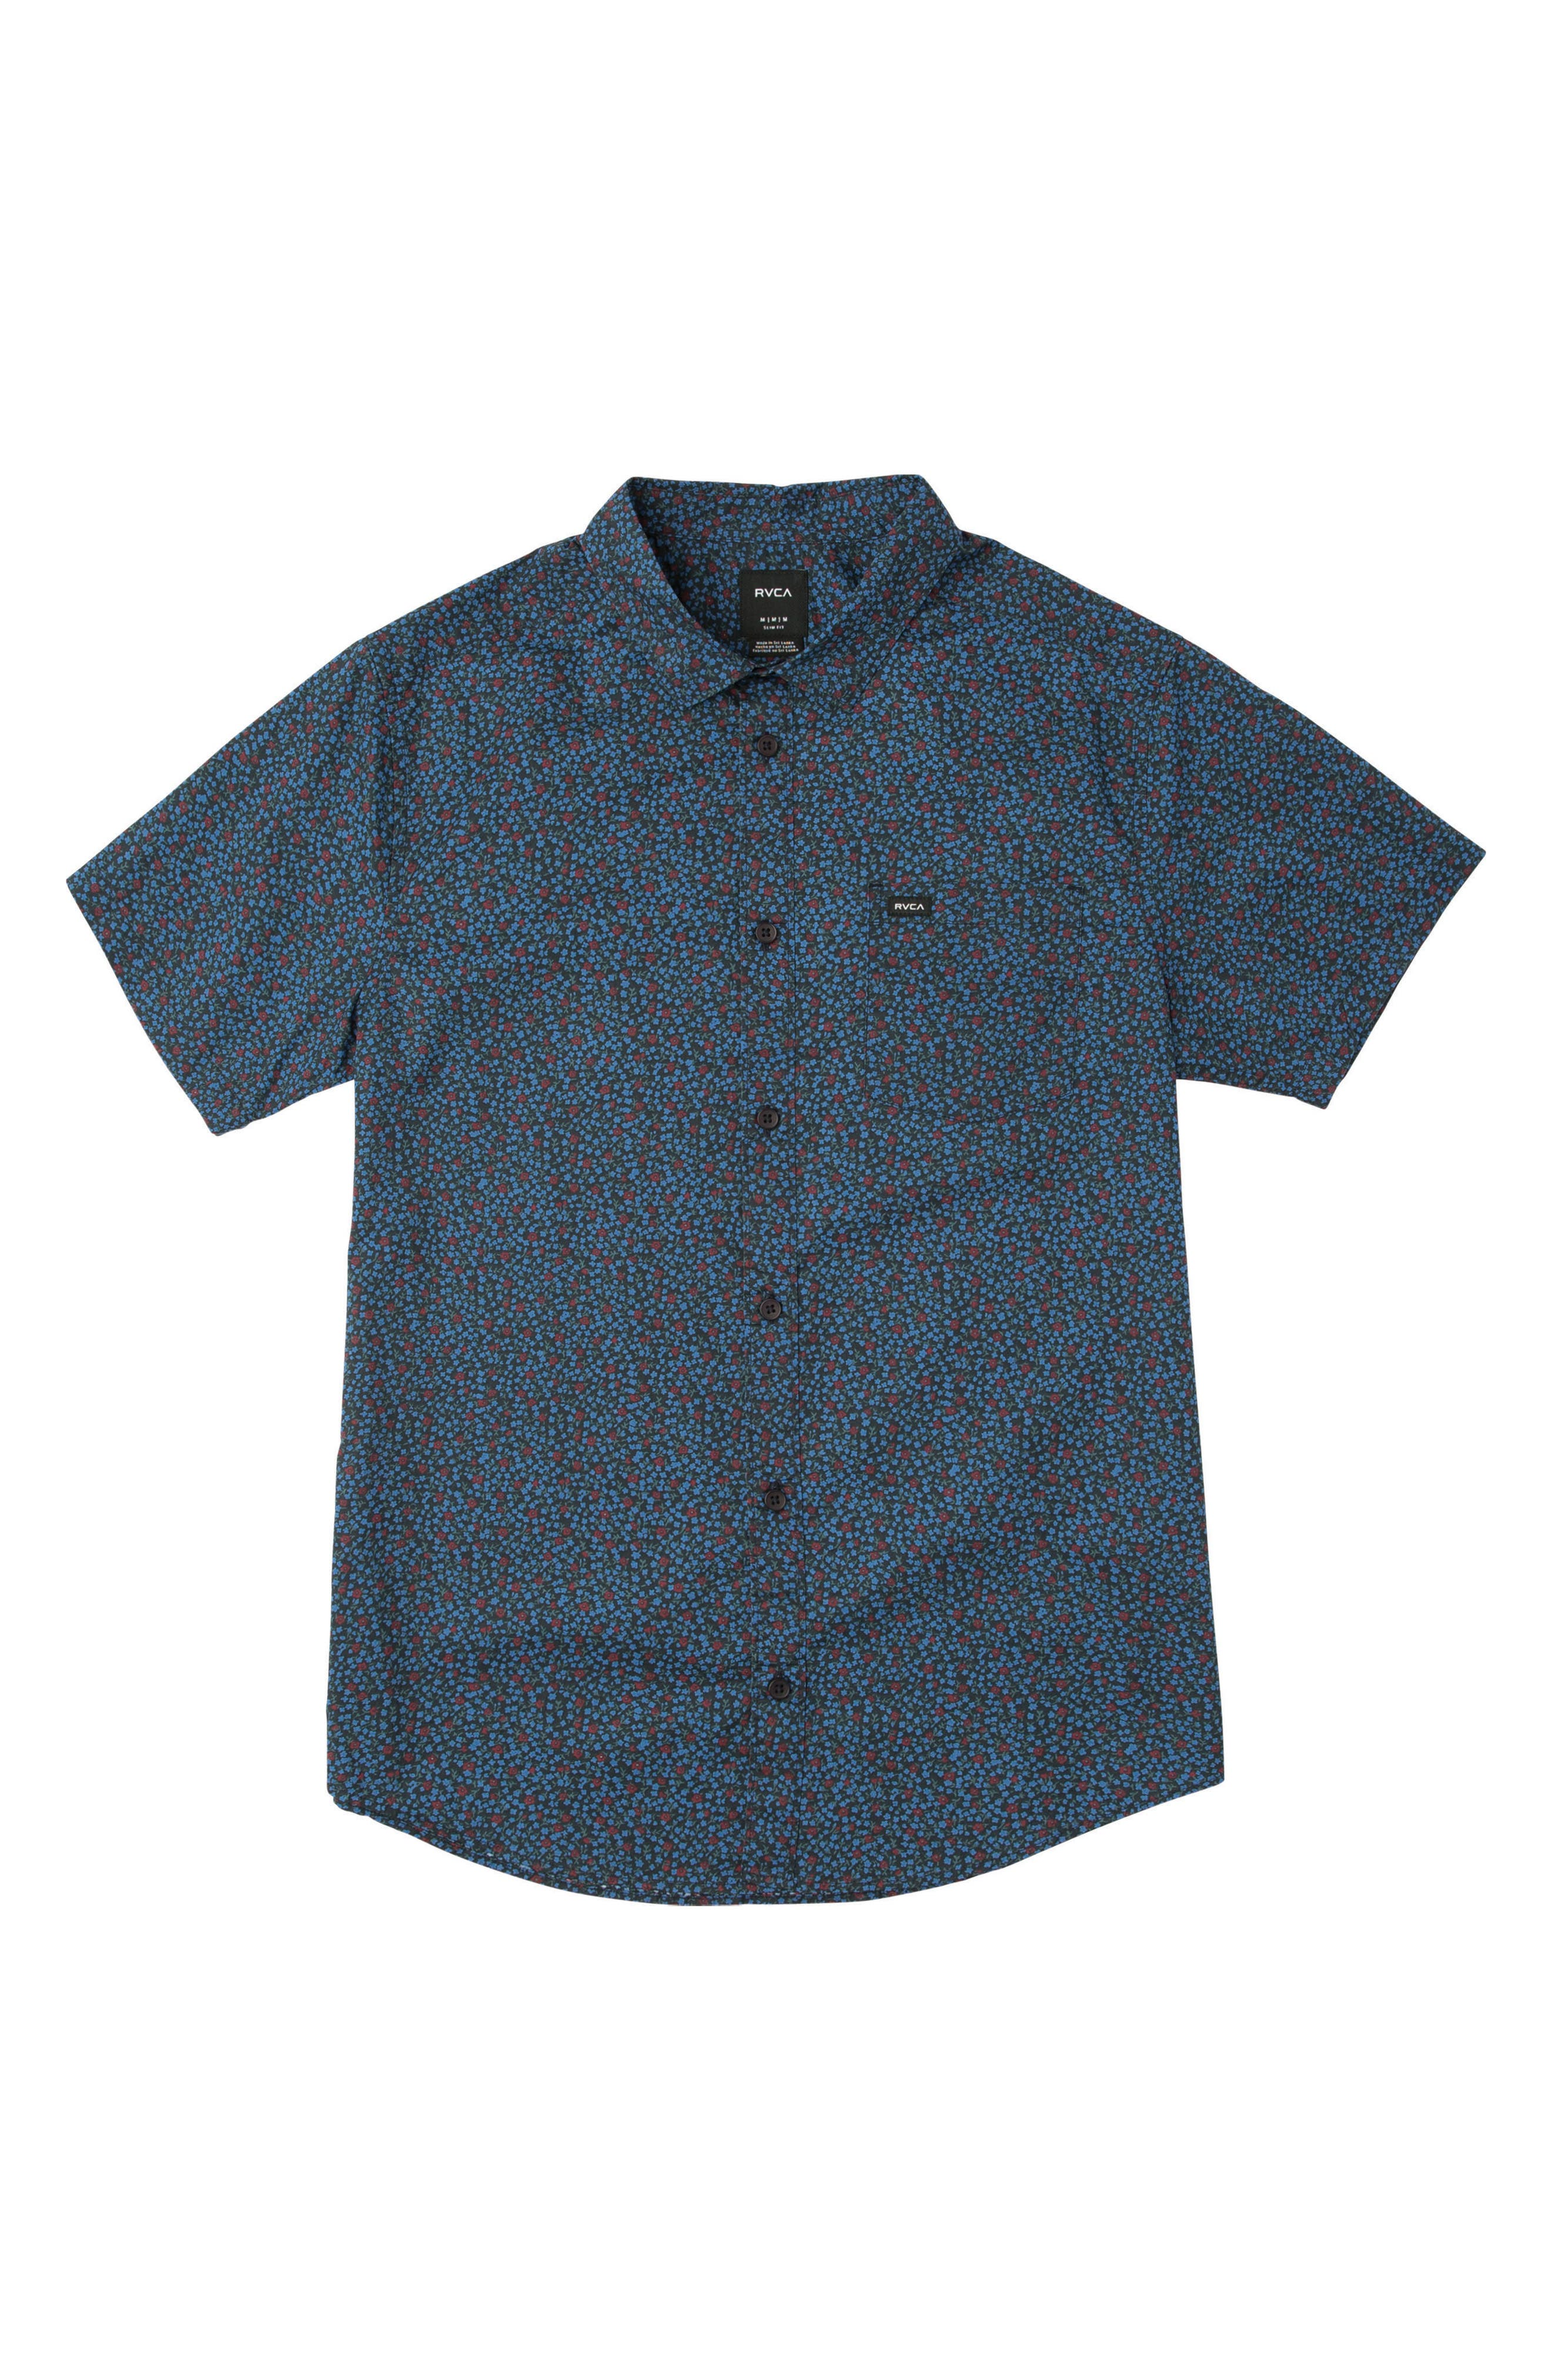 Happy Thoughts Print Woven Shirt,                         Main,                         color, 001